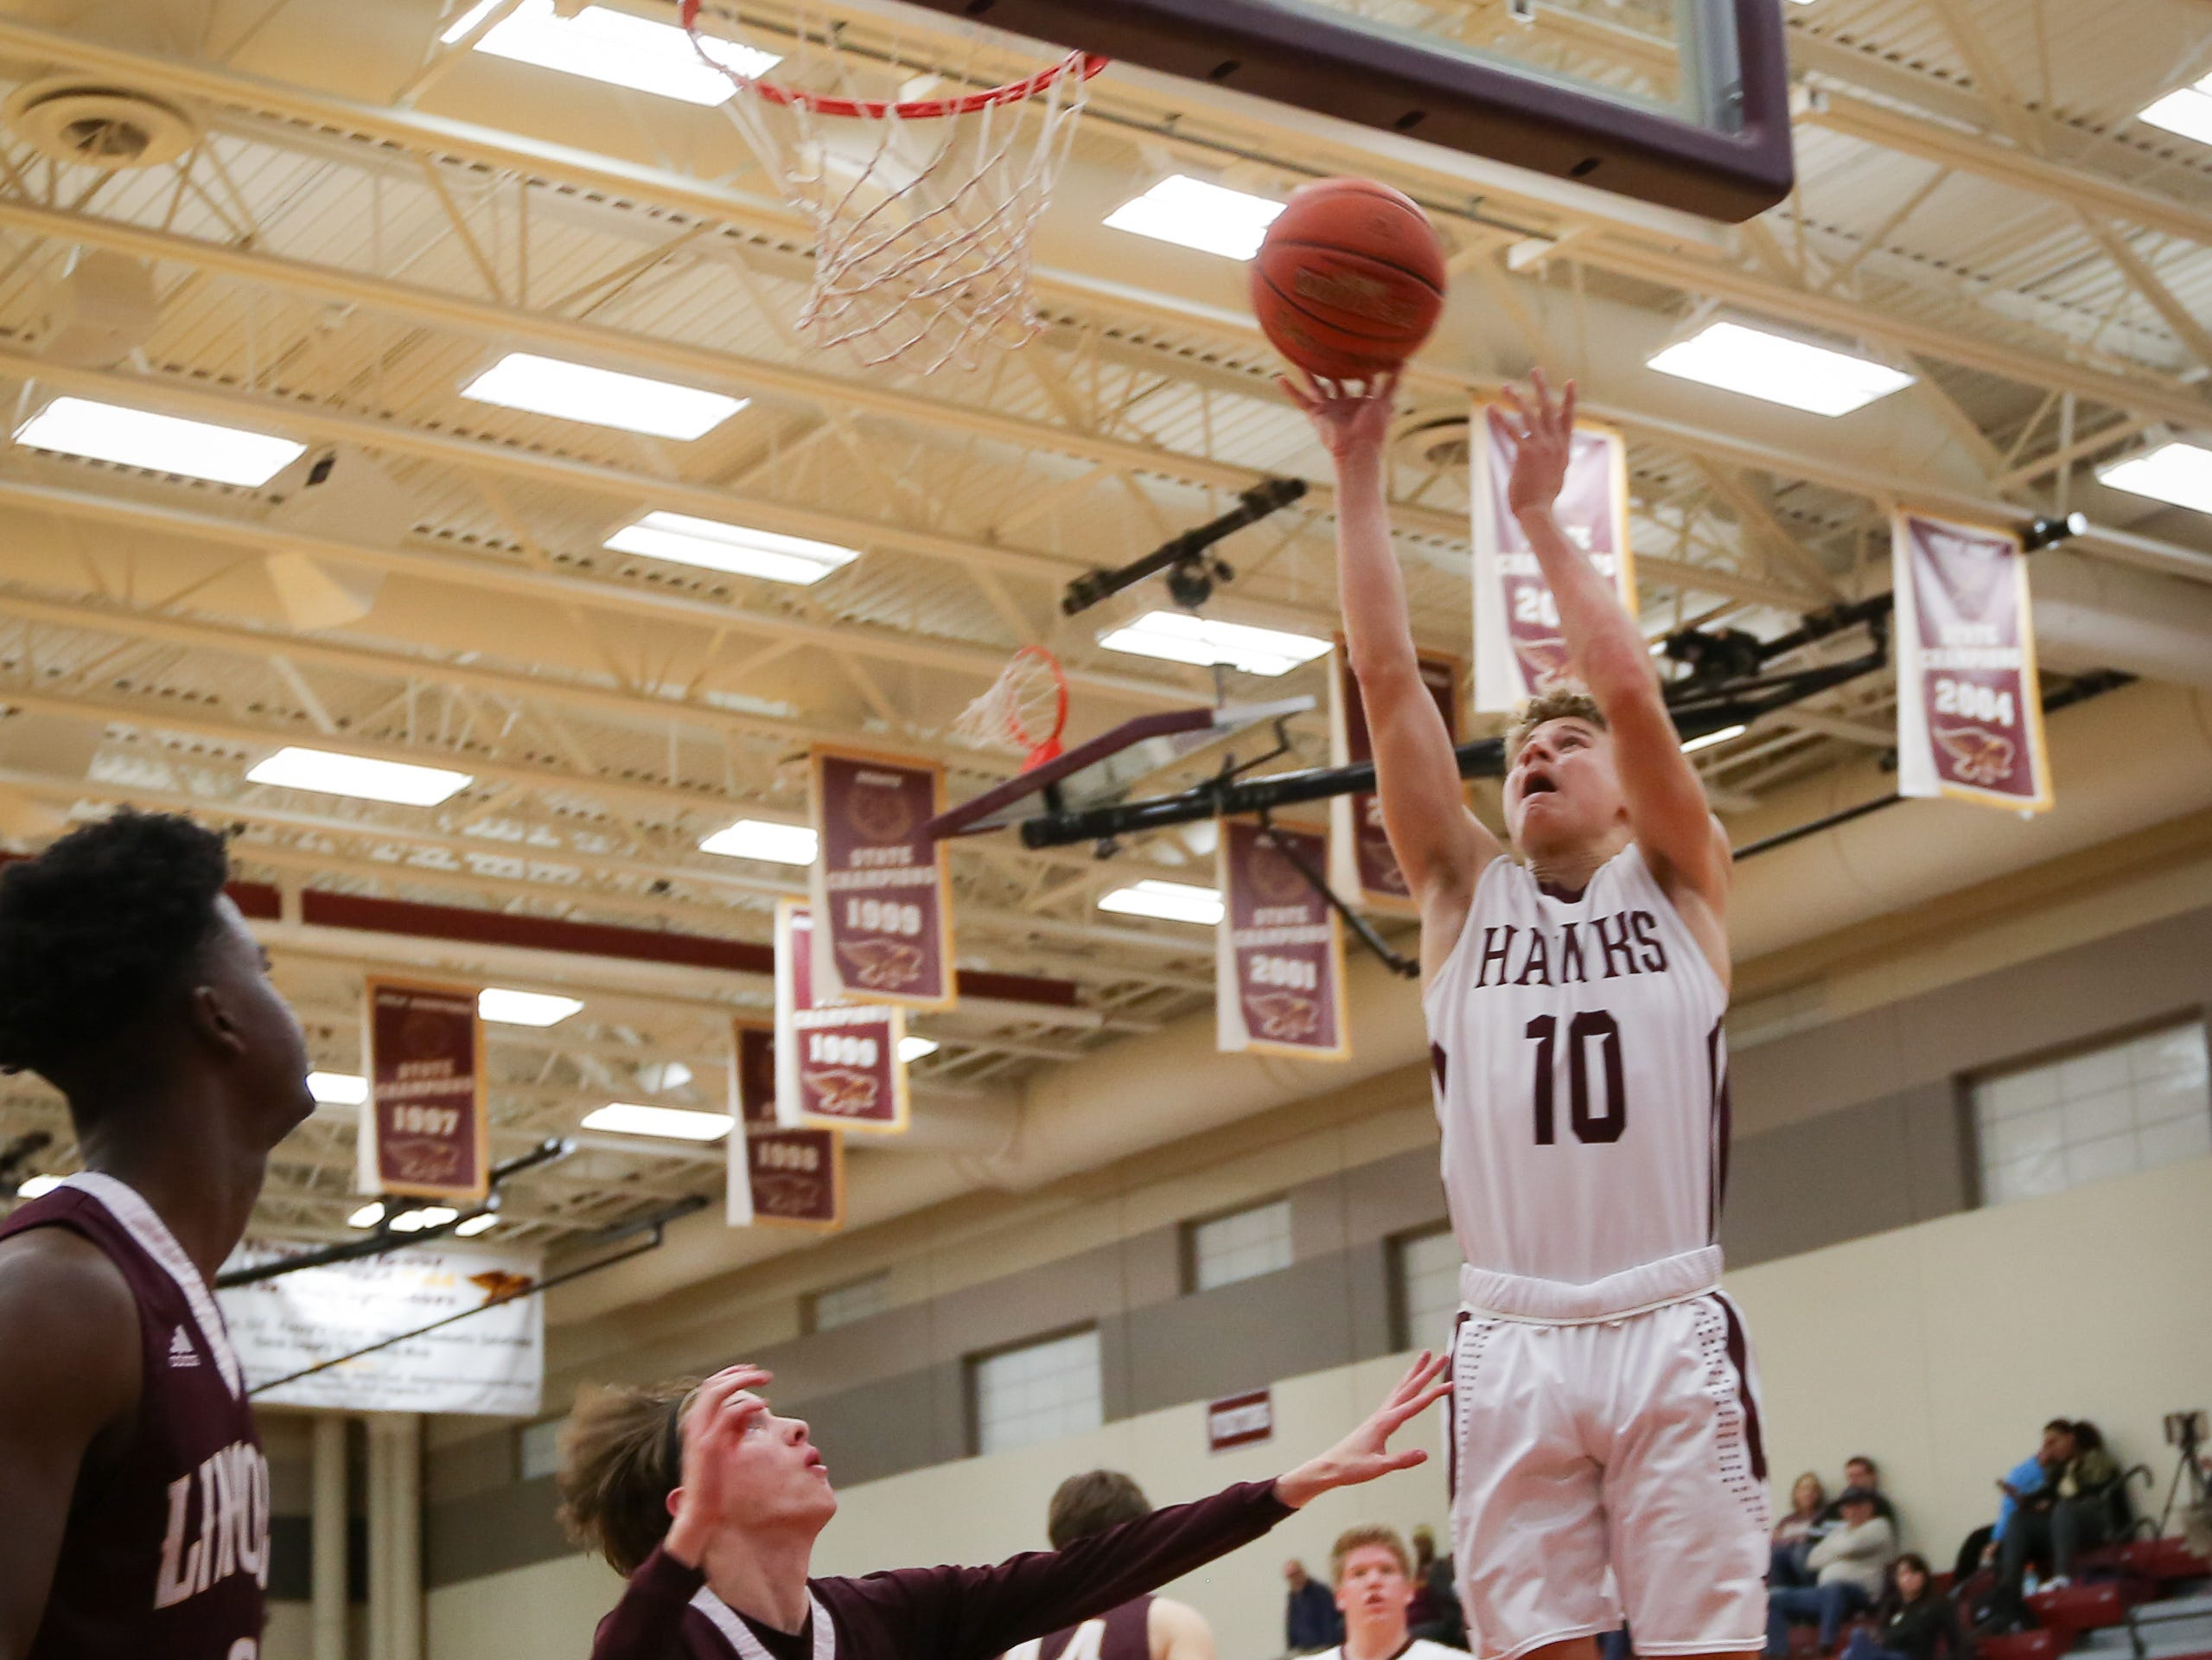 Ankeny junior Jordan Kumm sinks a basket during a boys high school basketball game between the Lincoln Railsplitters and the Ankeny Hawks at Ankeny High School on Dec. 4, 2018 in Ankeny, Iowa.